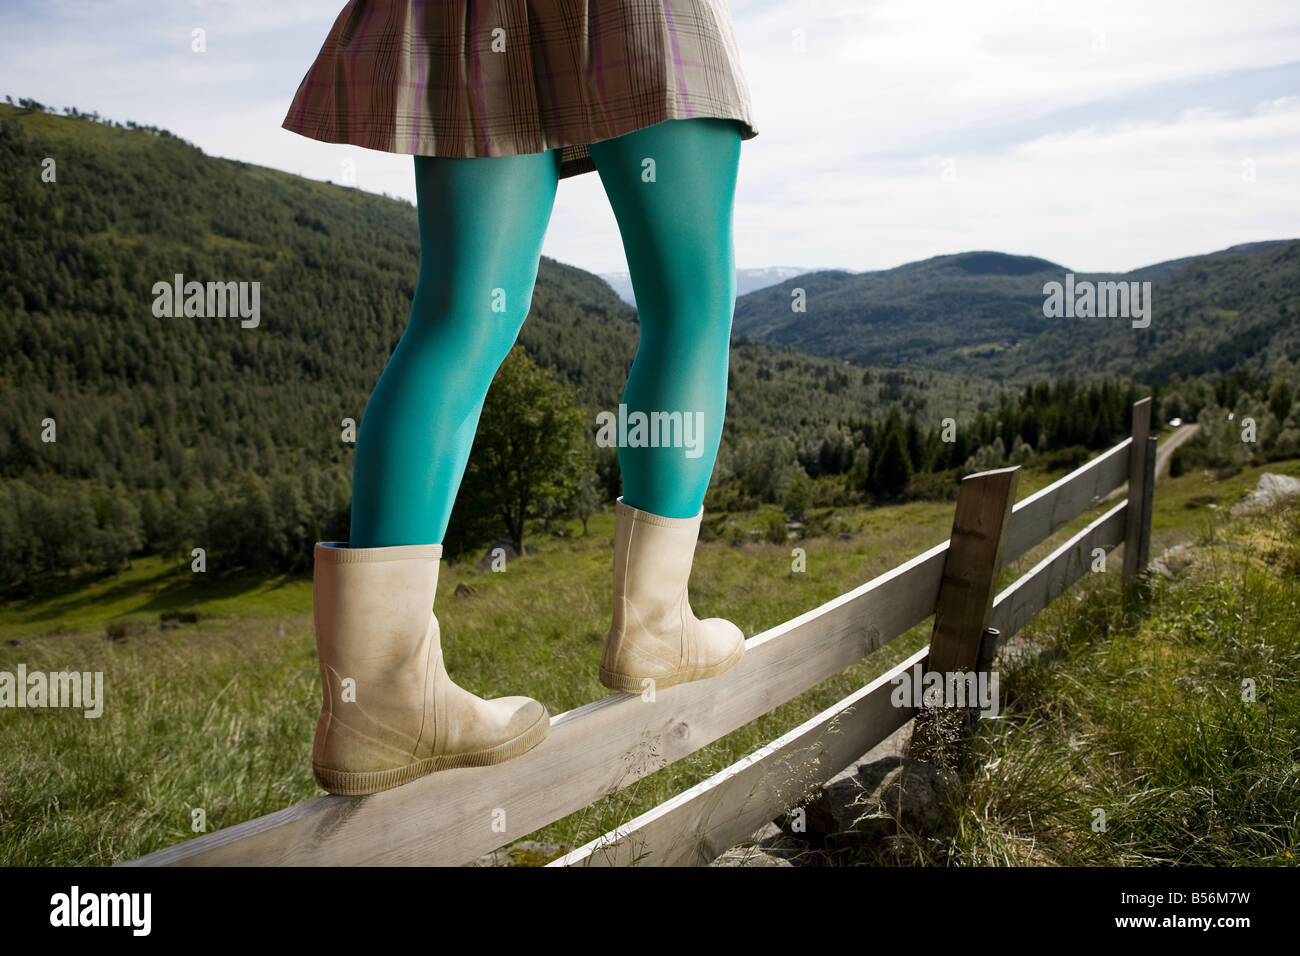 Woman walking on a wooden fence - Stock Image